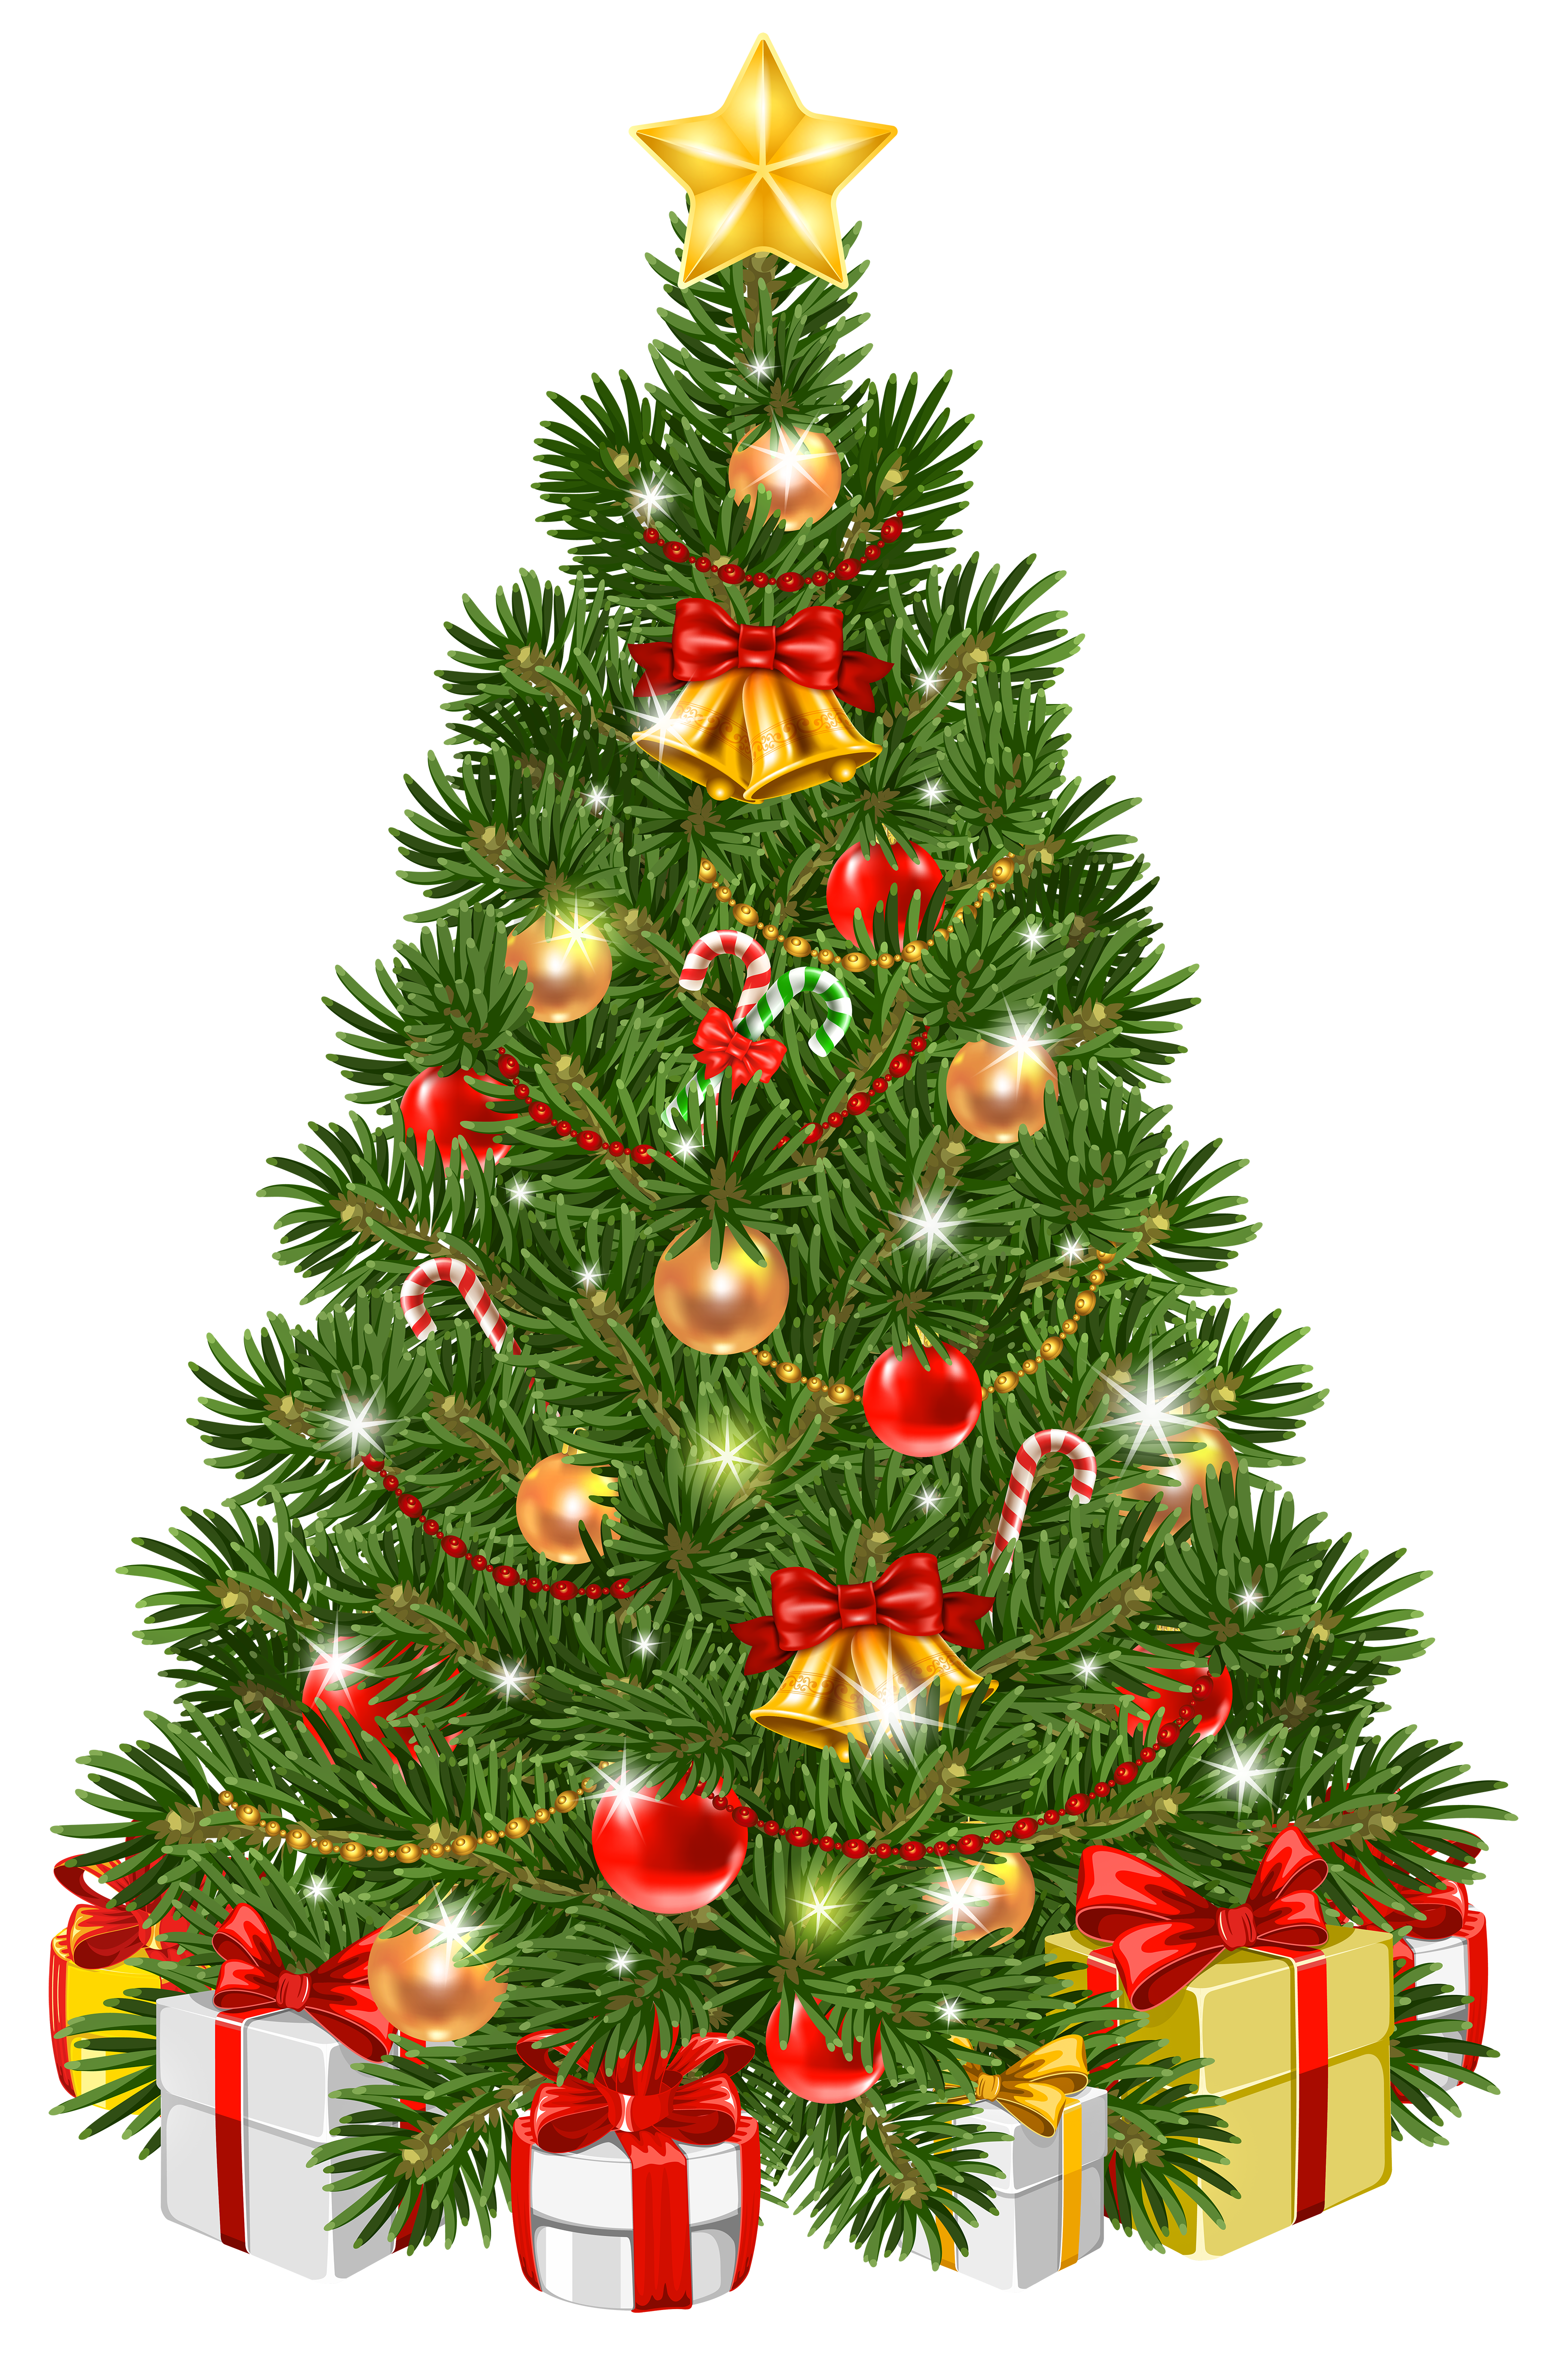 Decorated christmas tree clipart clip art library Decorated Christmas Tree Transparent PNG Clip Art Image | Gallery ... clip art library